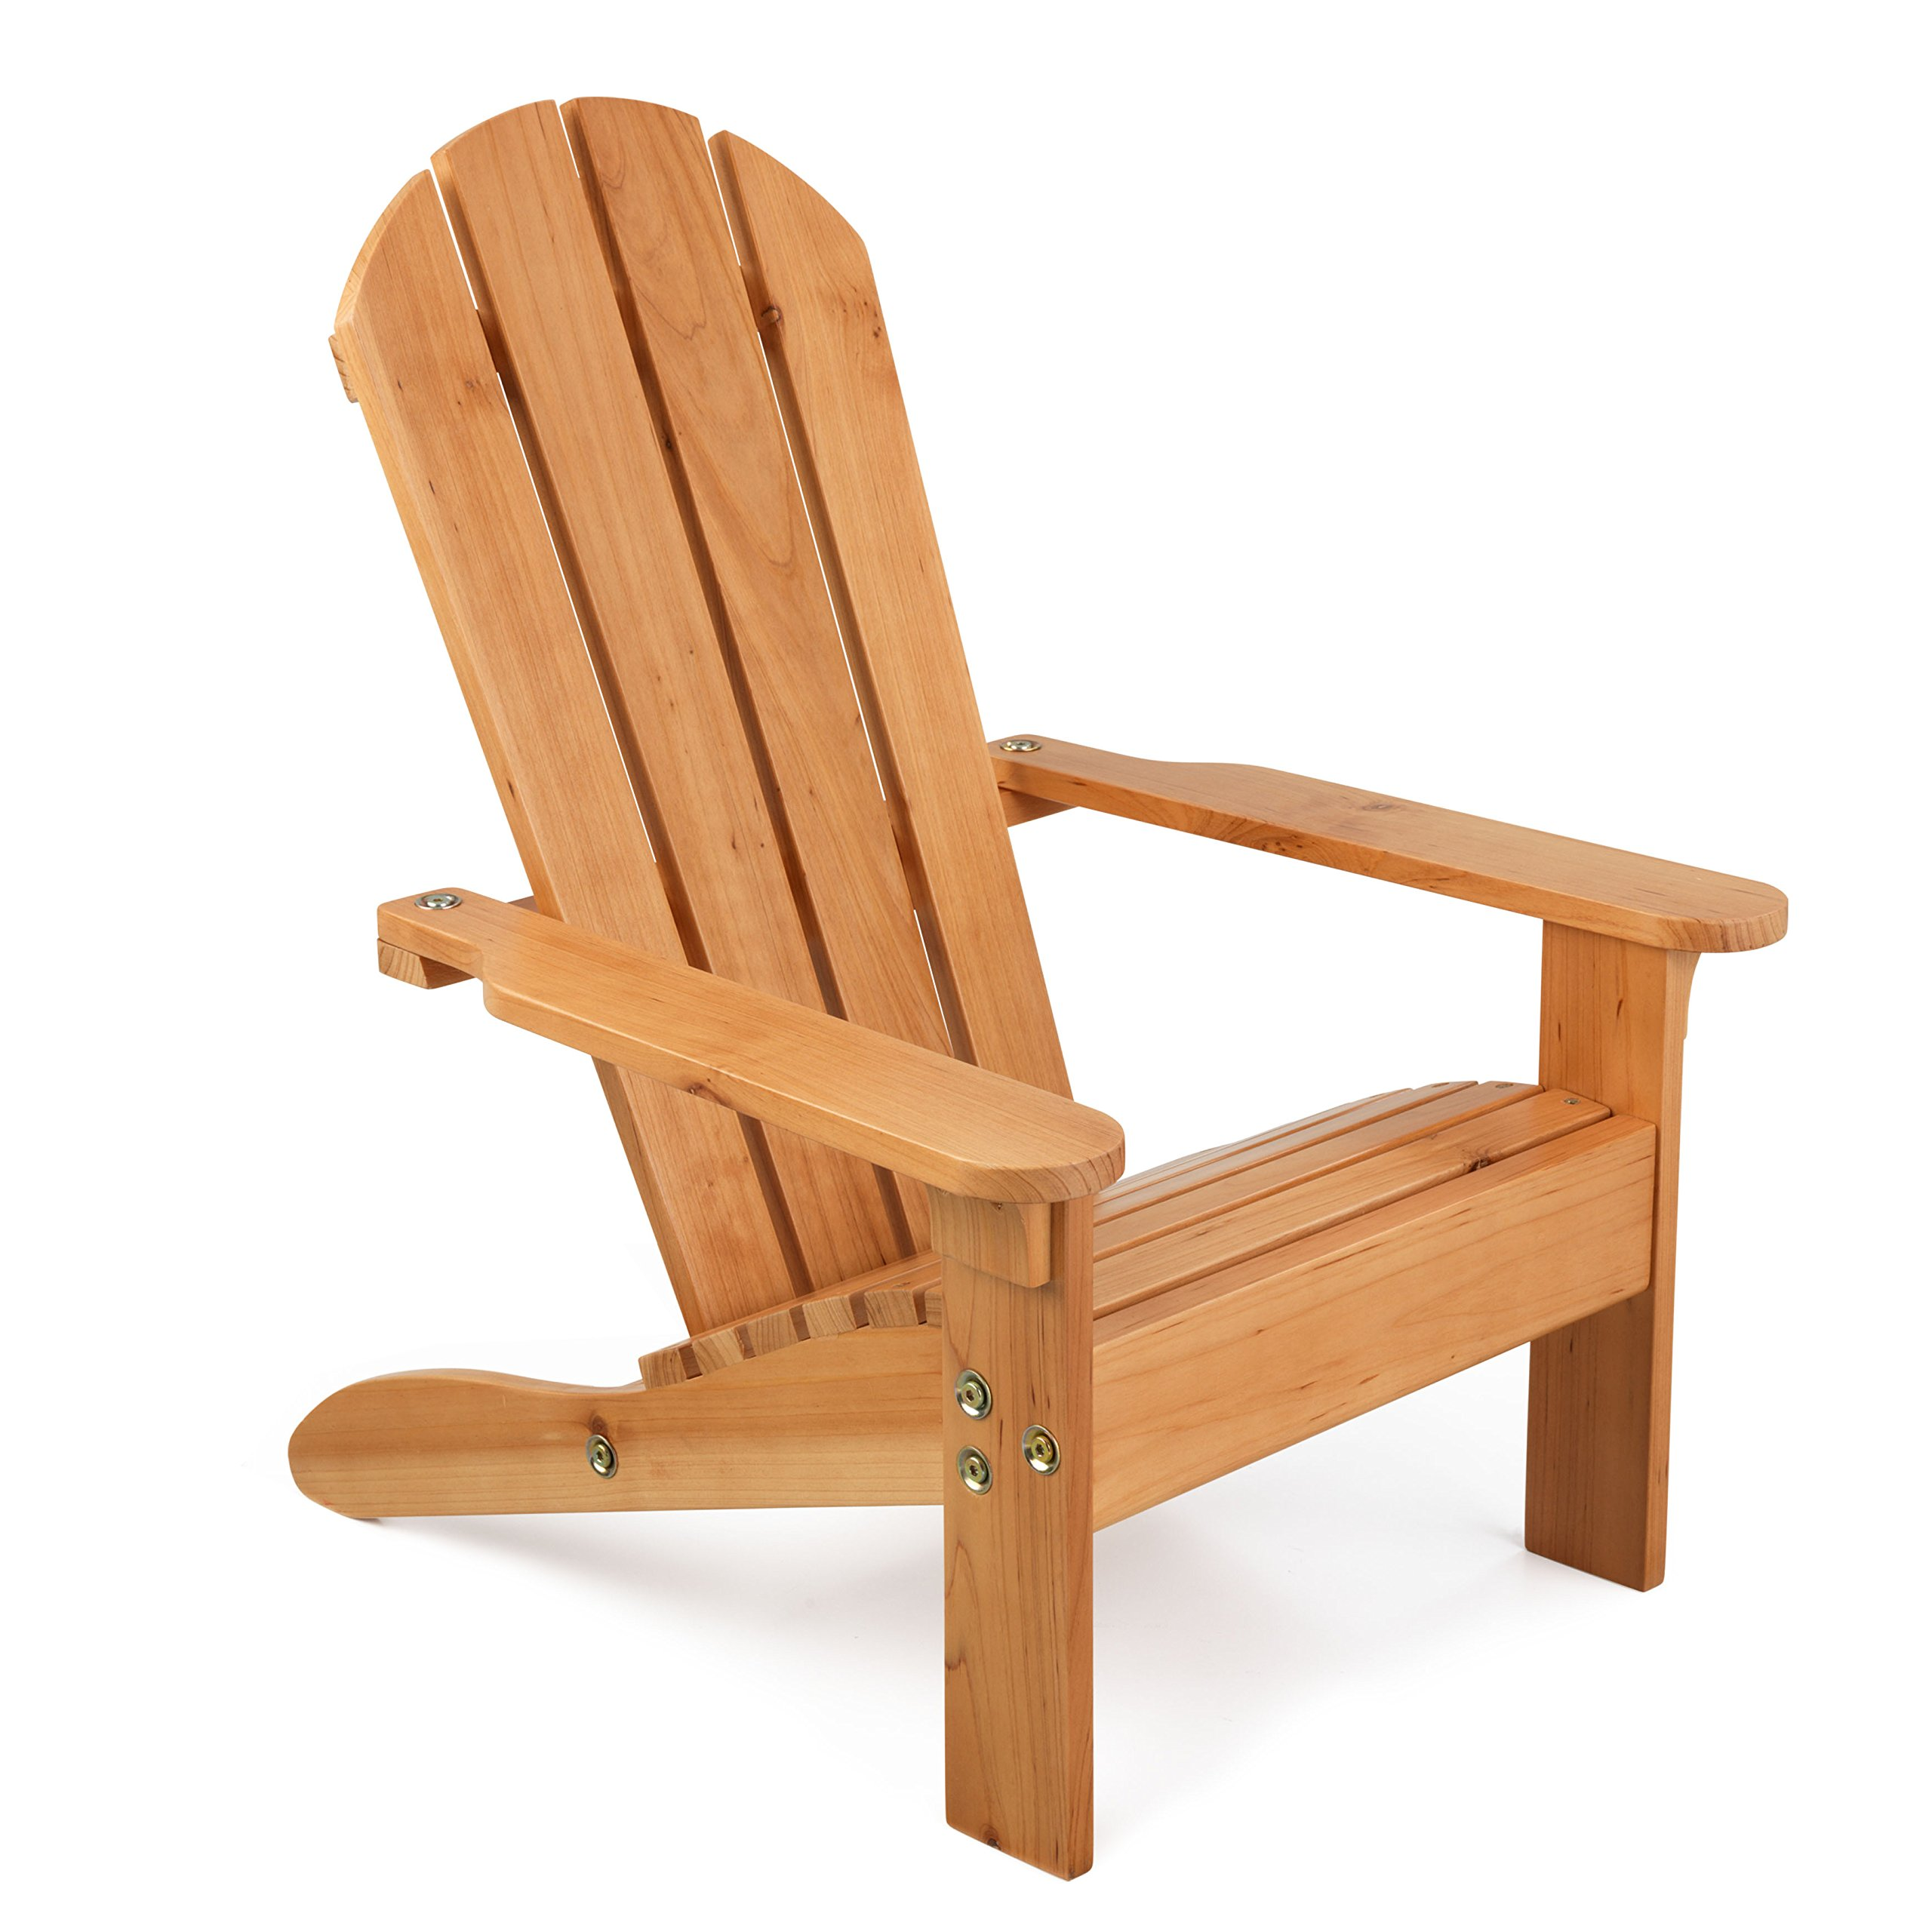 KidKraft Adirondack Chair - Honey by KidKraft